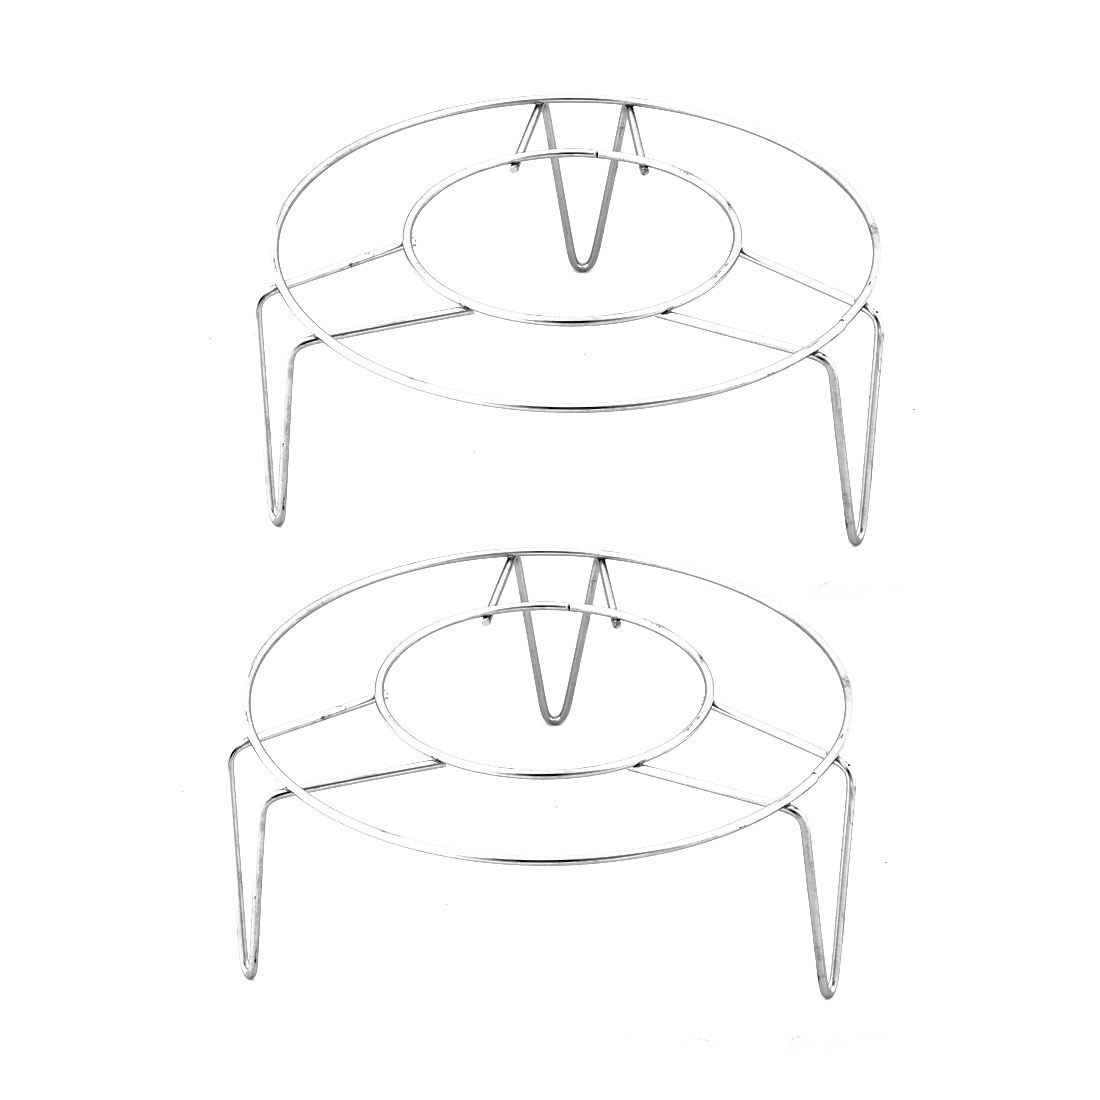 Stainless Steel Round Shape 3 Legs Design Cooking Steamer Steam Rack 2 Pcs